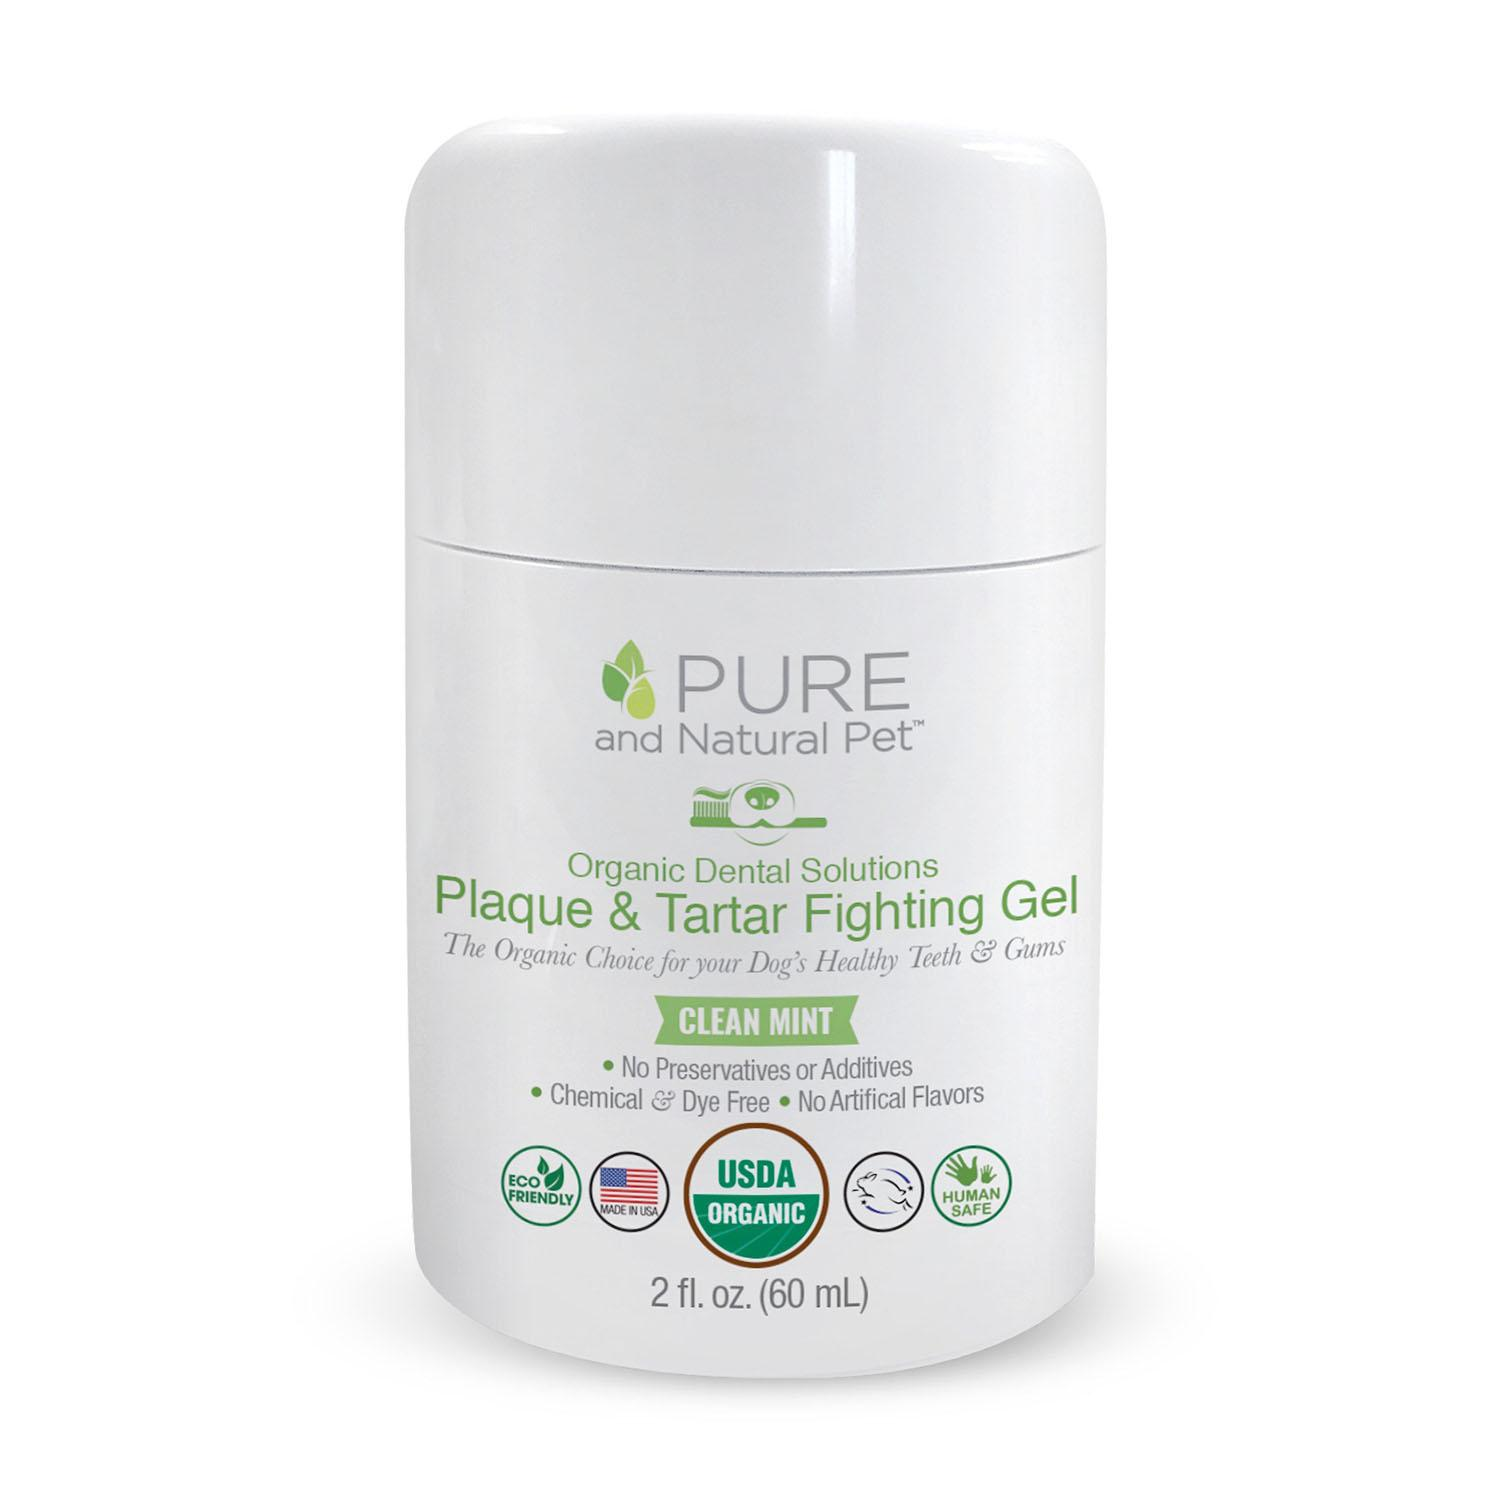 Pure and Natural Pet Organic Dental Solutions Plaque & Tartar Fighting Gel for Dogs